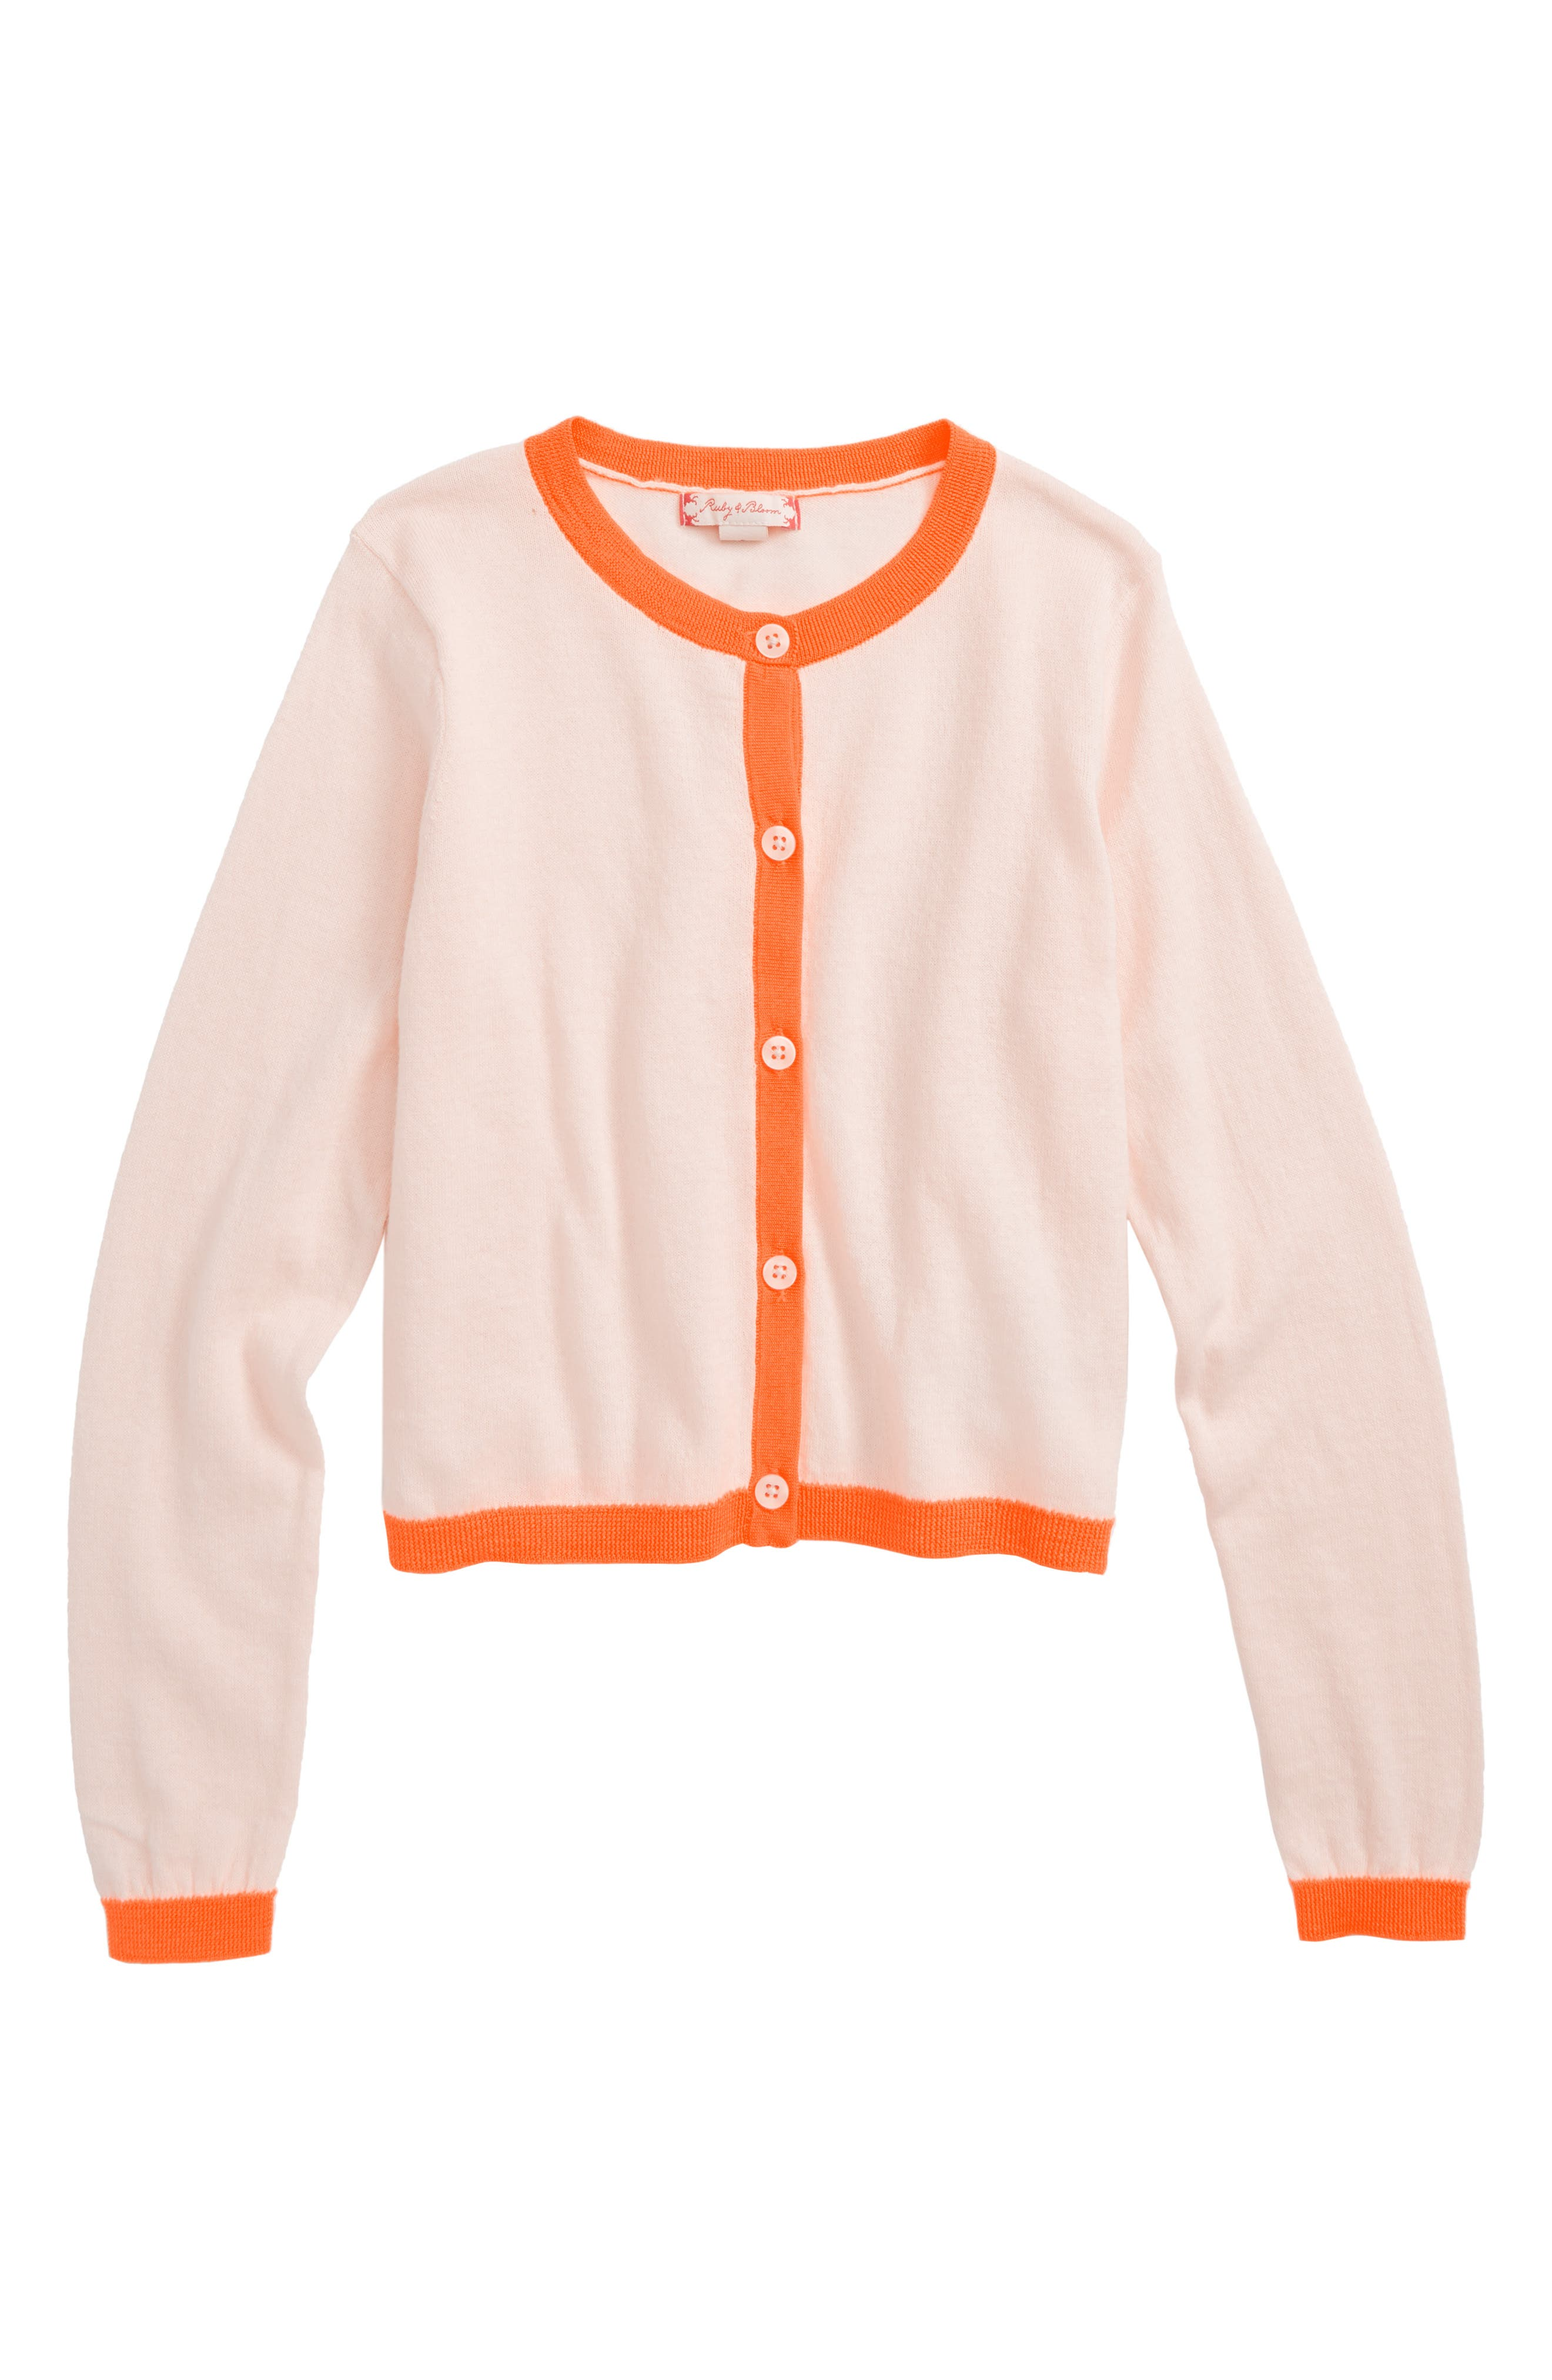 Ruby & Bloom Contrast Trim Cardigan (Toddler Girls, Little Girls & Big Girls)